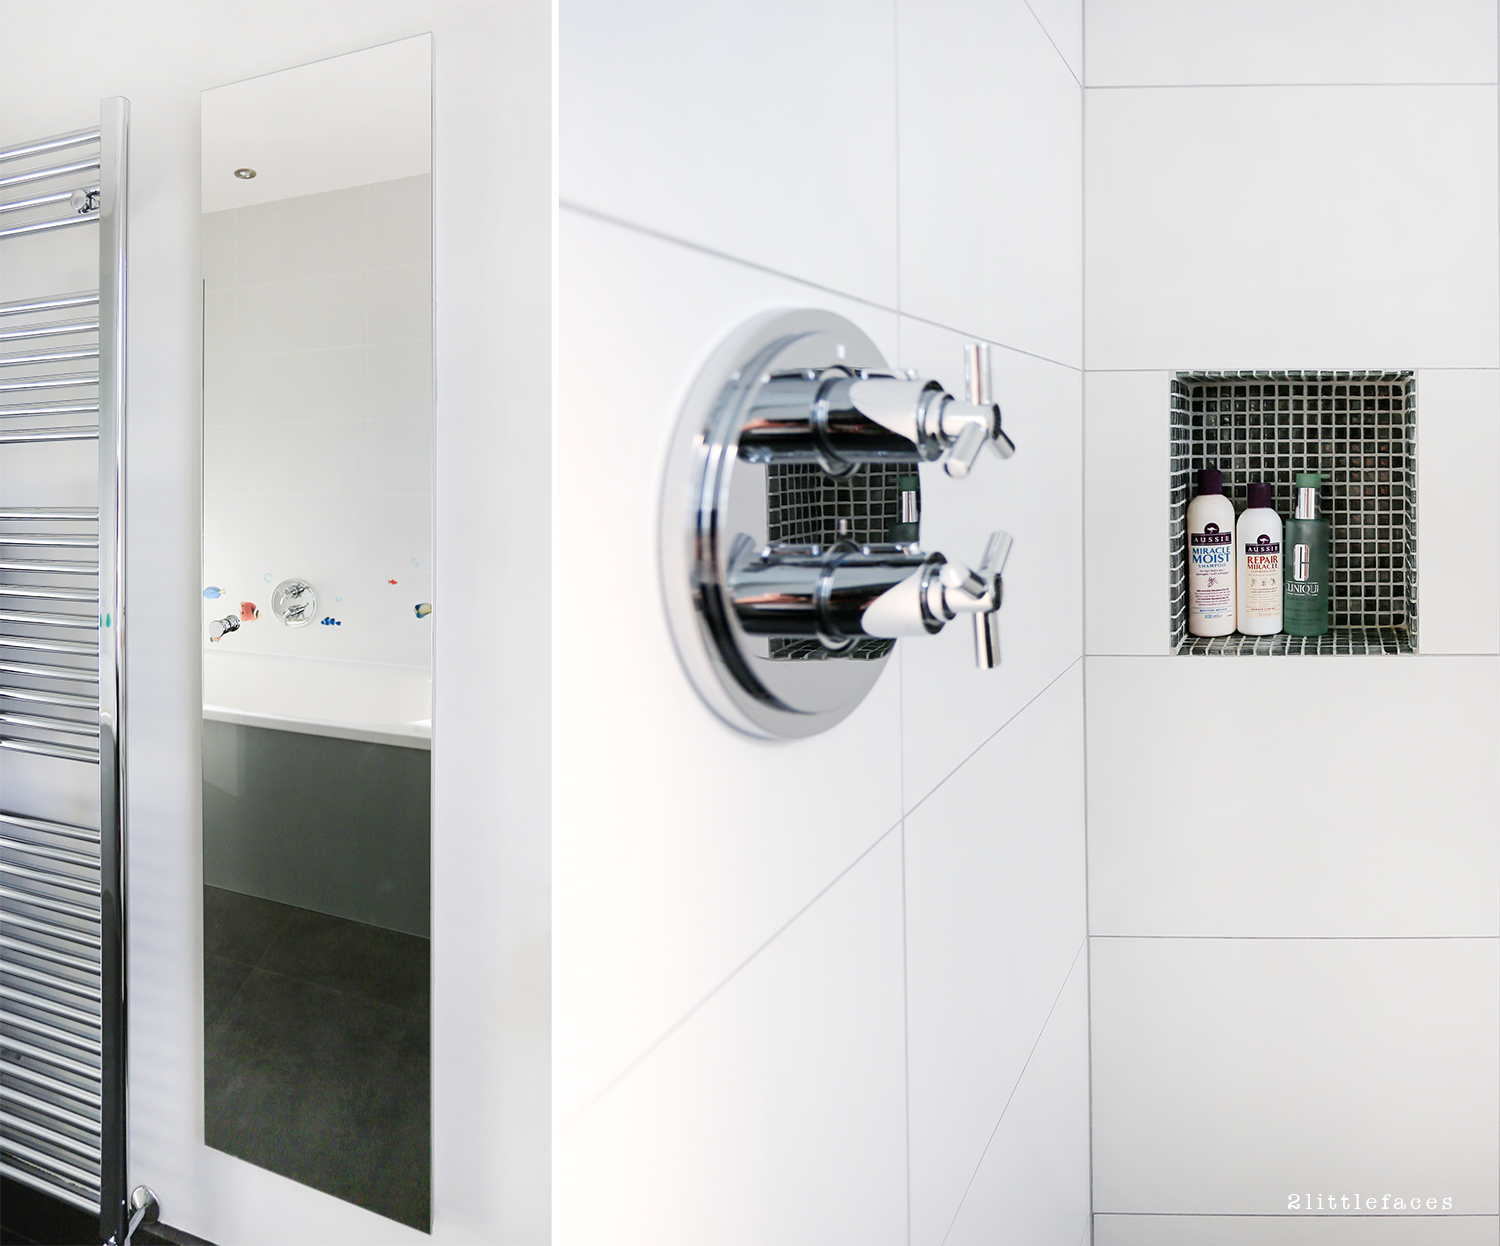 2 Littlefaces 9 Space Saving Ideas When Renovating Your Home